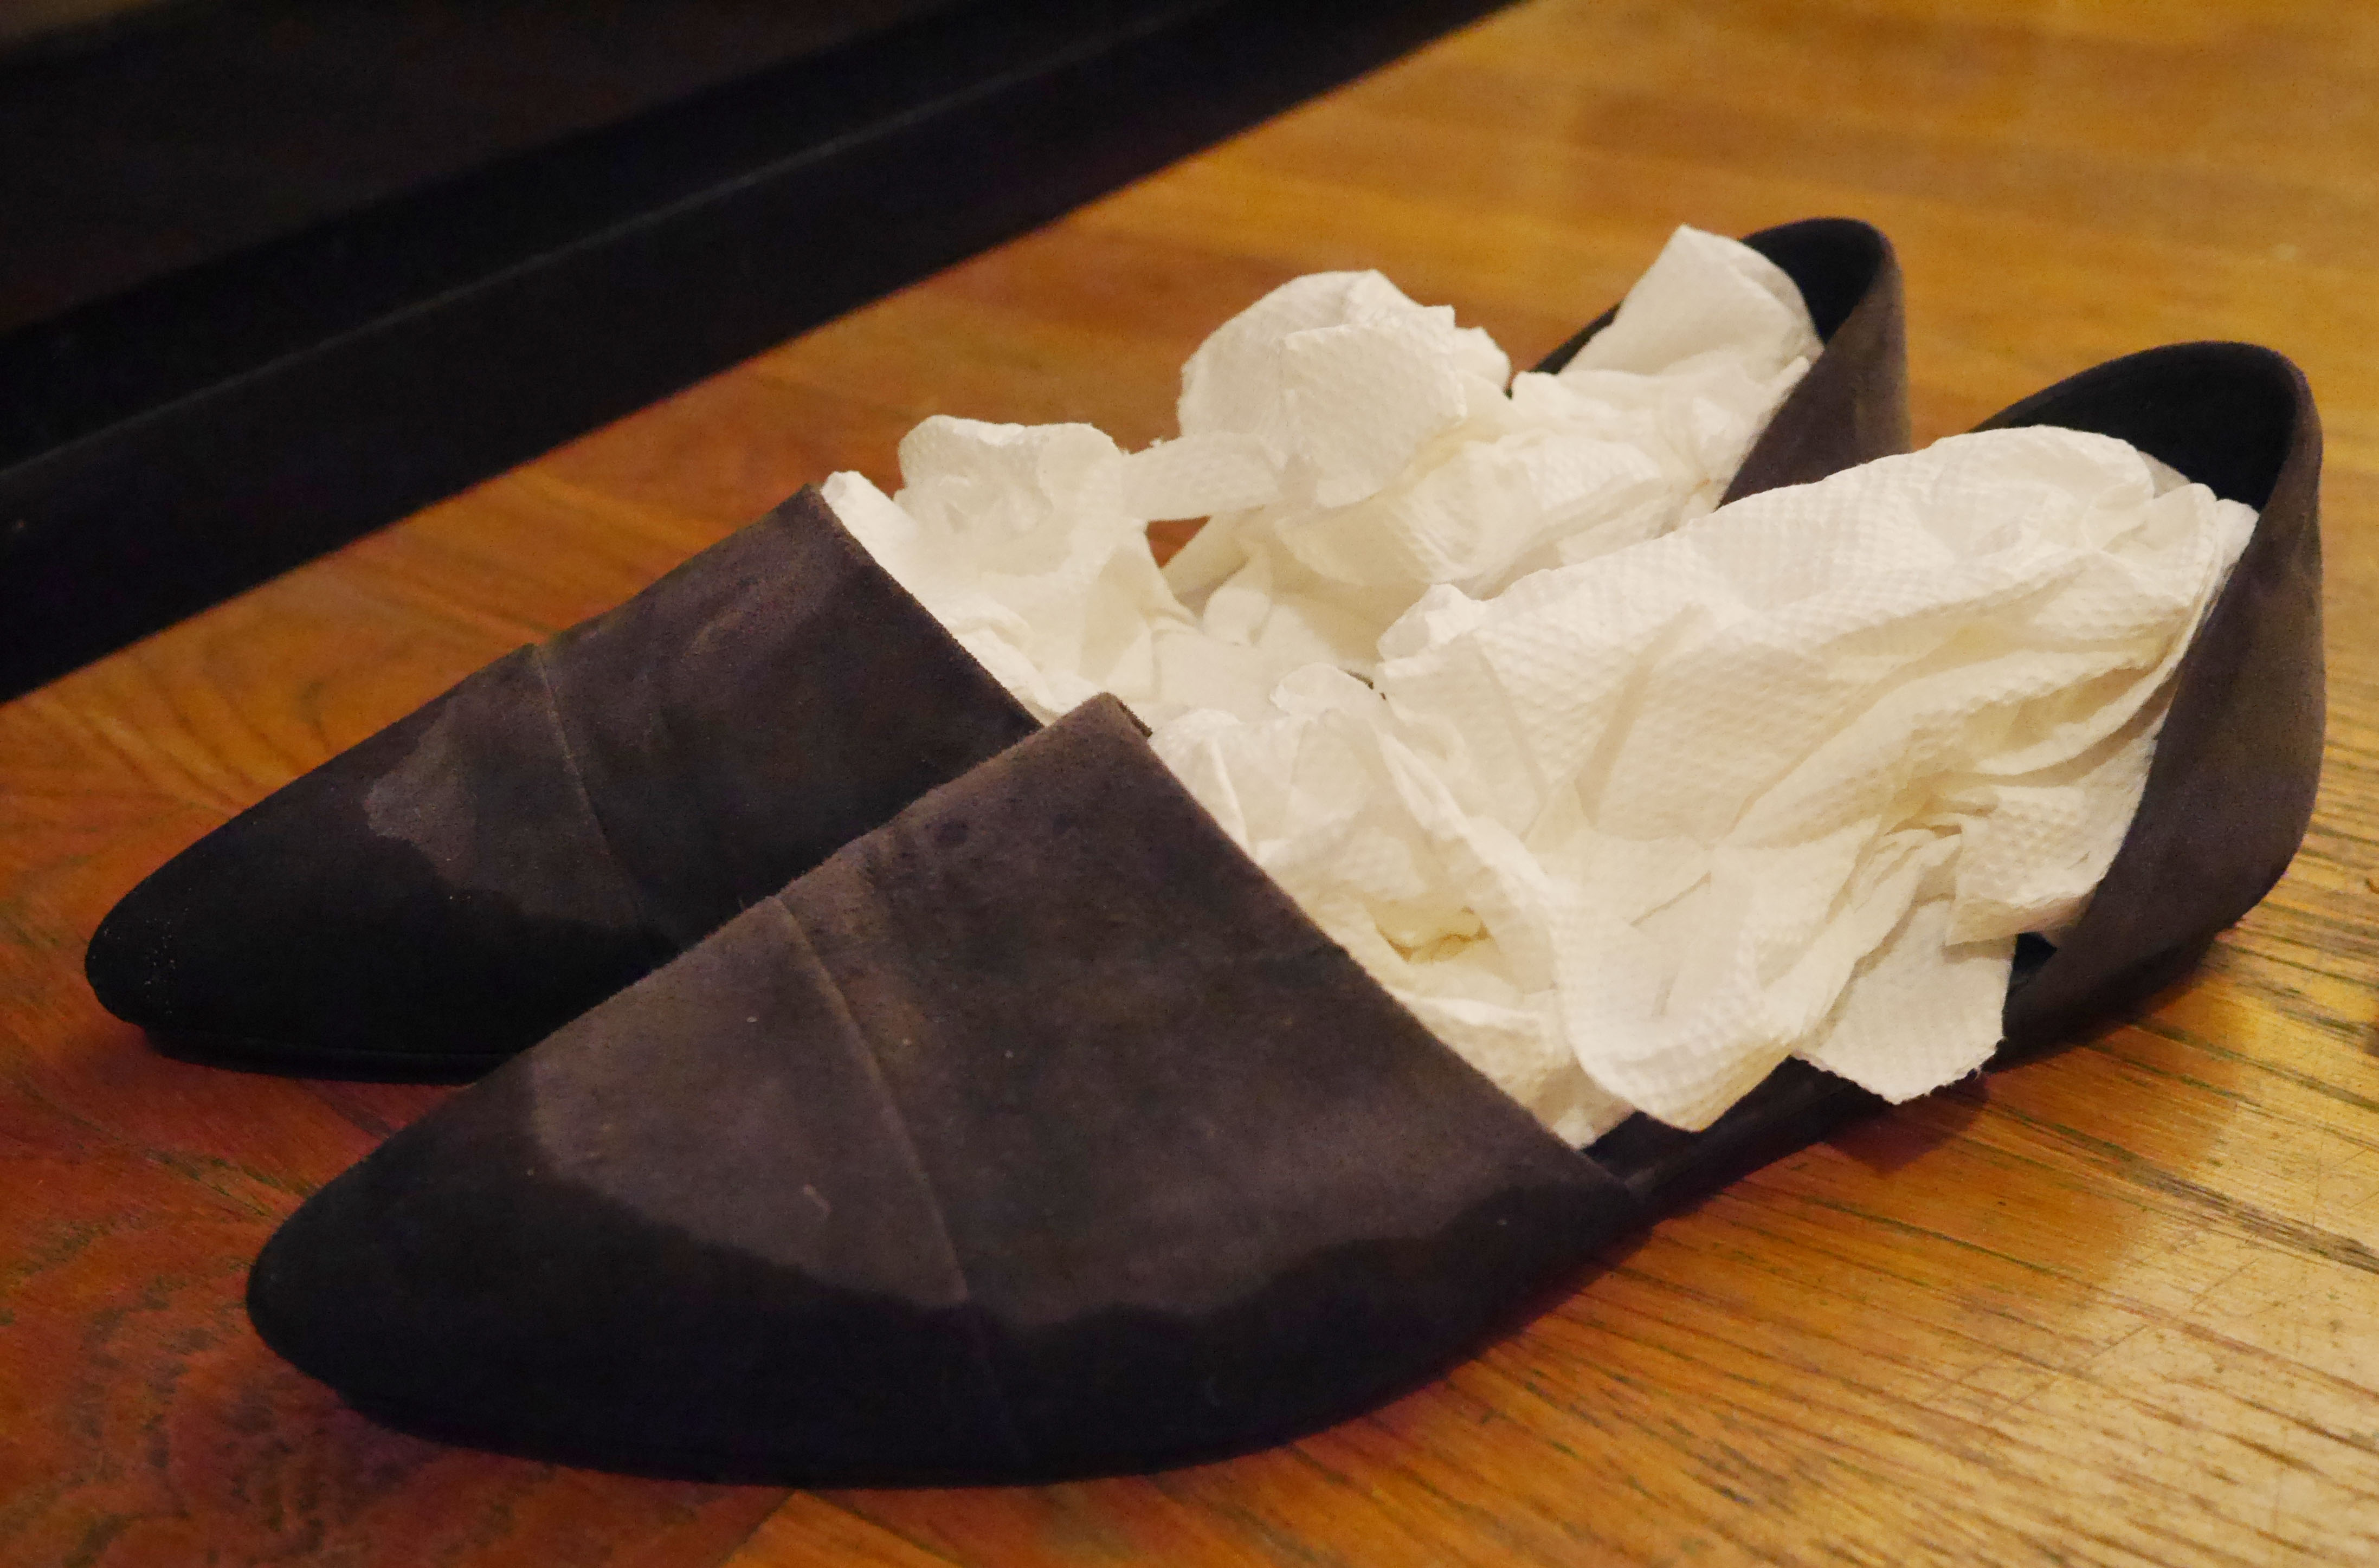 How To Repair Suede Shoes That Got Wet